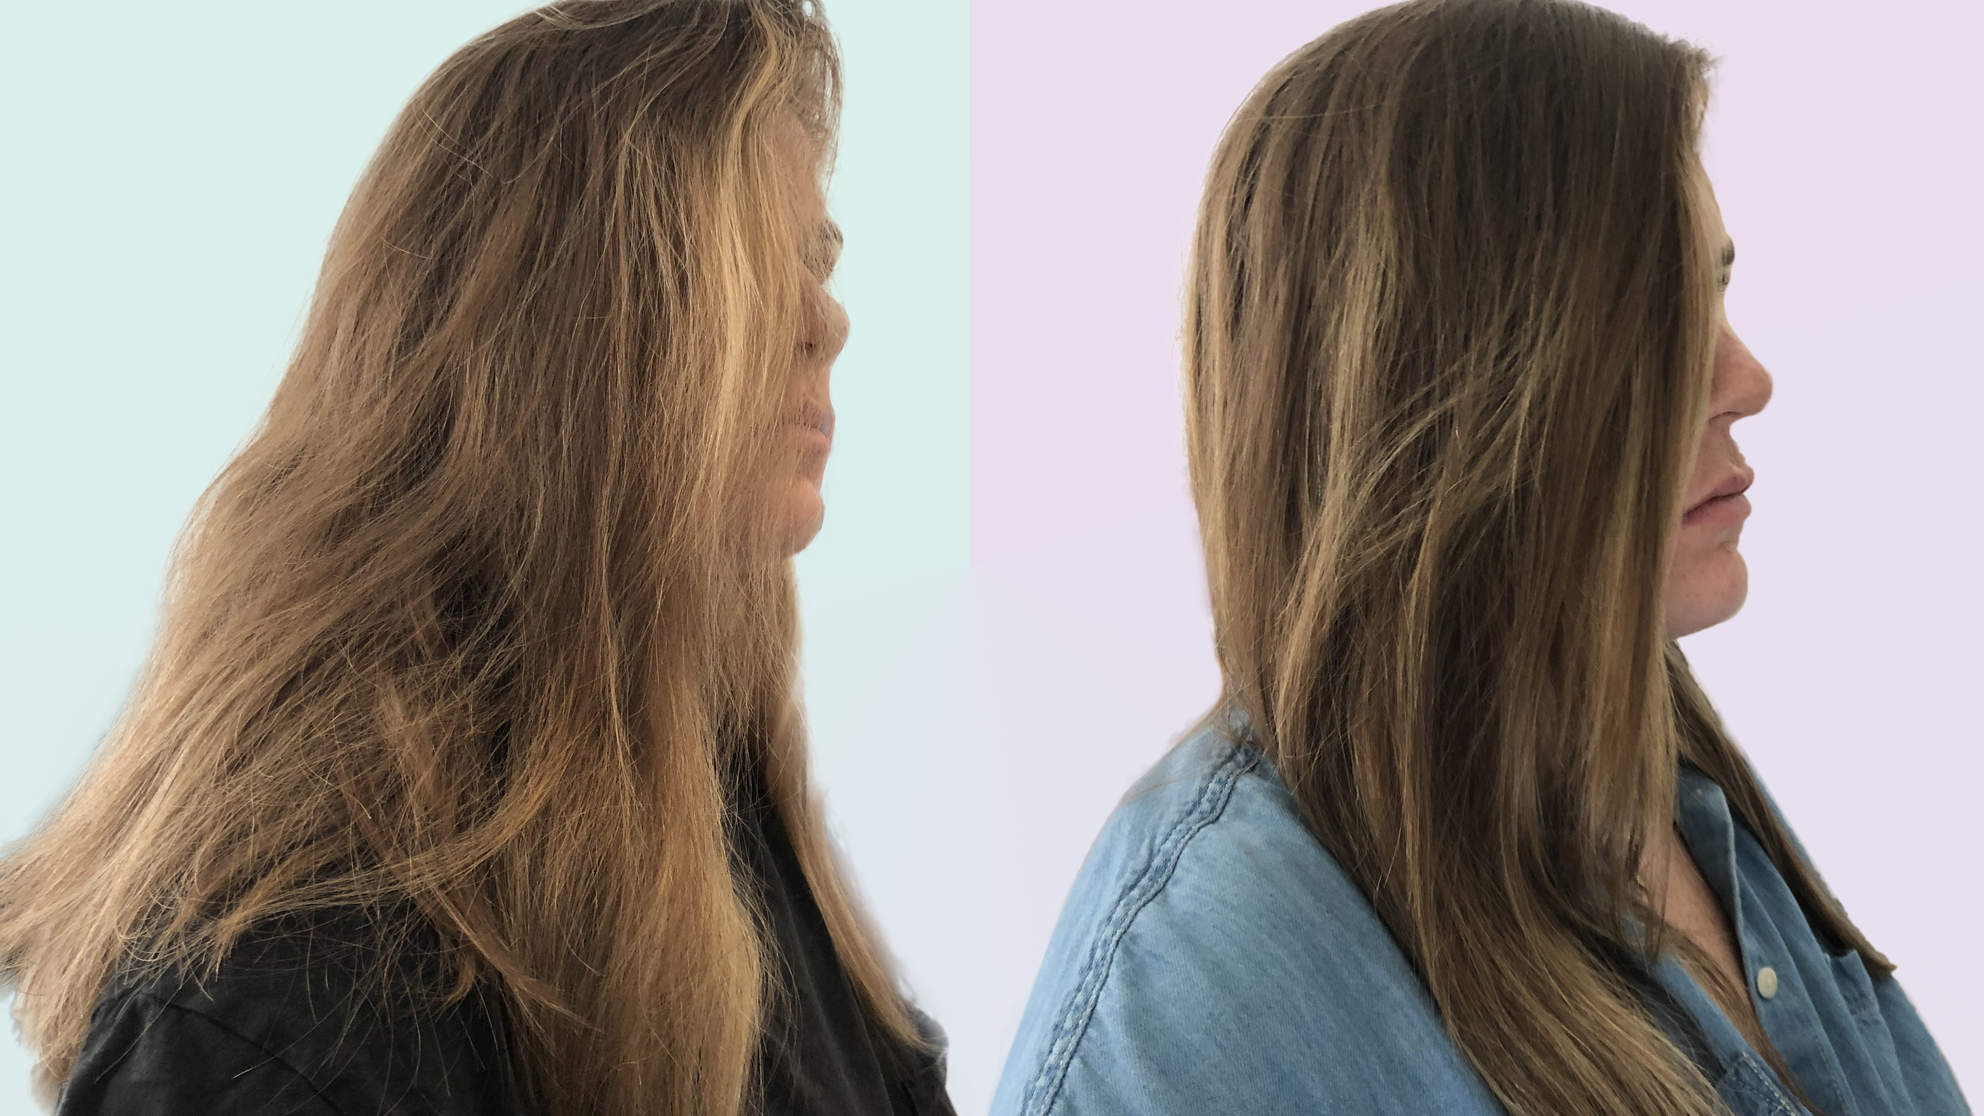 I Used the Olaplex Hair Perfector No. 3 Treatment—and My Hair Has Never Felt Better